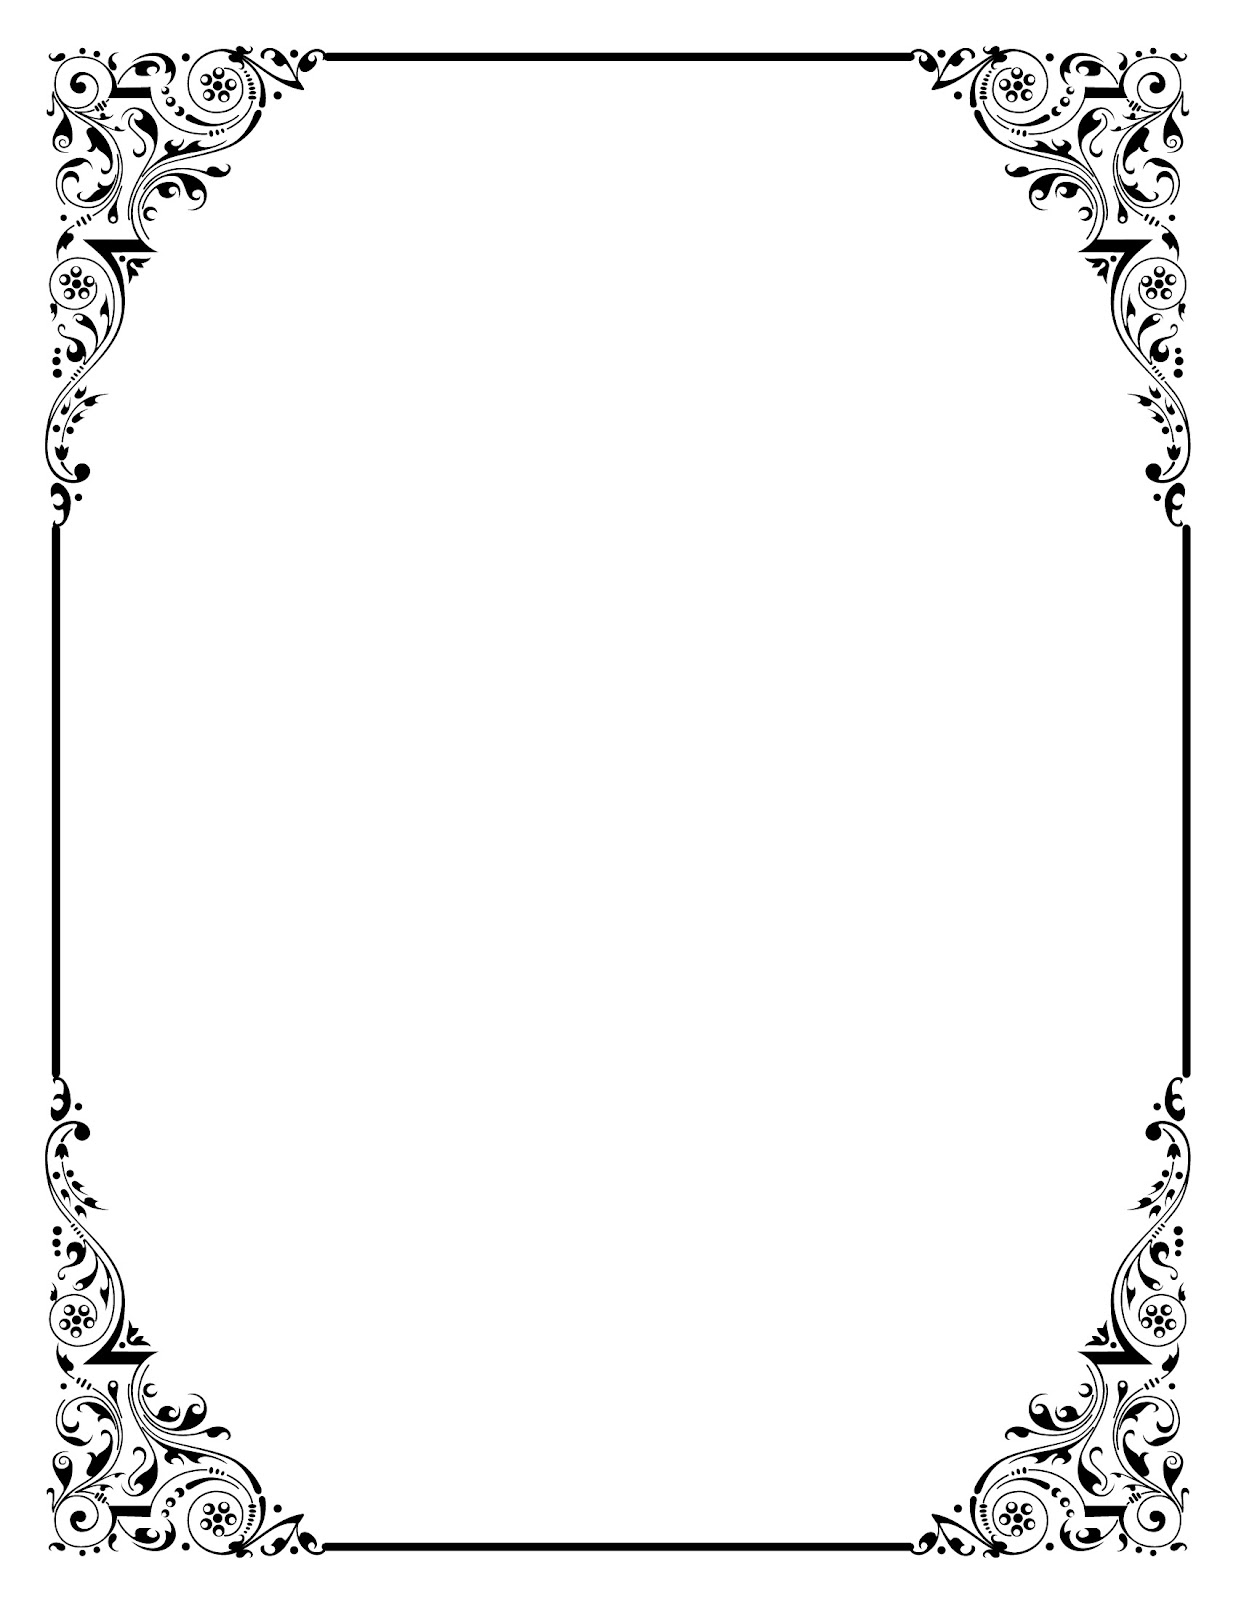 Free Printable Border Designs blogspot besides 460282024387175235 together with Coloring Page Of A Spotted Coiled Snake For Kids additionally Coloring Page Of Monster High Ghouls Spirit For Kids besides Online Art Courses Free Christmas Borders Free Christmas Borders Design For Bulletin Board Borders Design Free Download. on scary christmas music downloads